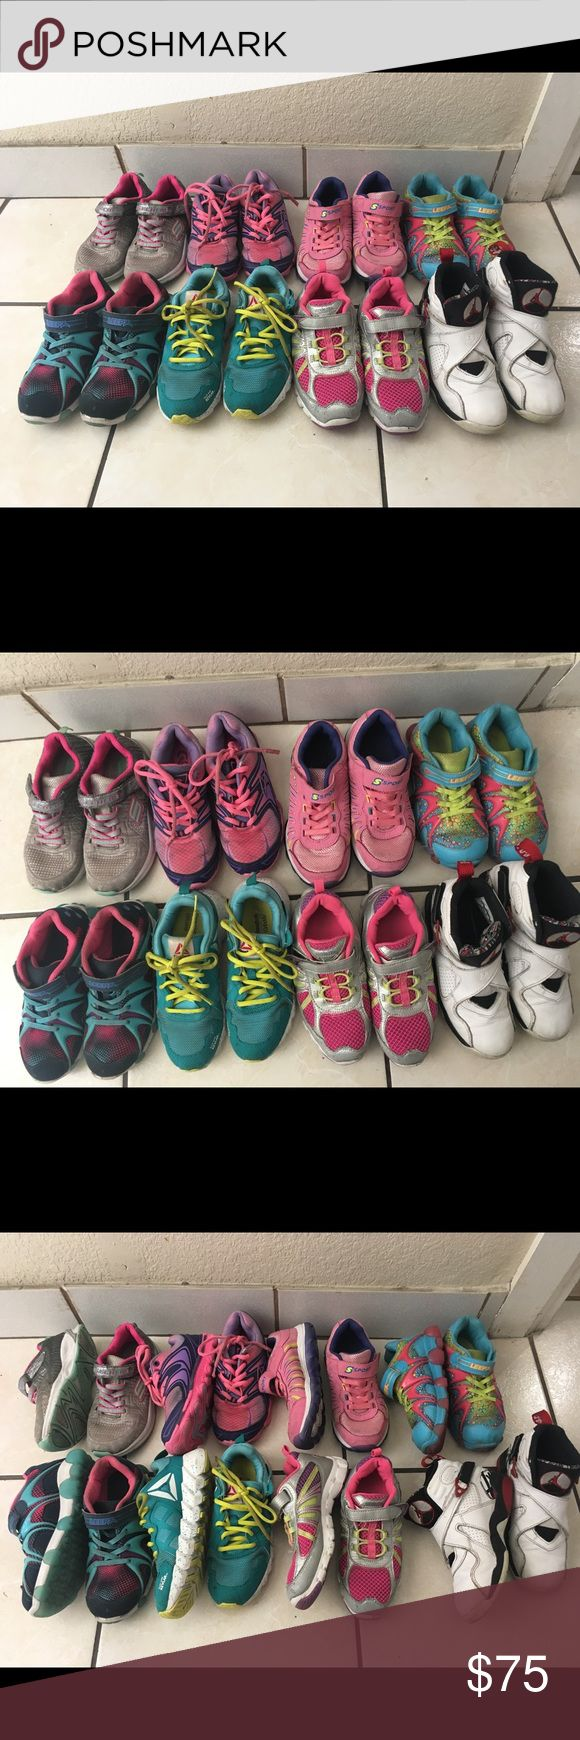 Tenis 👟 shoes 8 parts tenis 👟 shoes  for girls all is in good conditions the sizes is 13/1/2 reebok . Skechers stride rite leepz champion sport Jordan23 8 diferent Shoes Sneakers